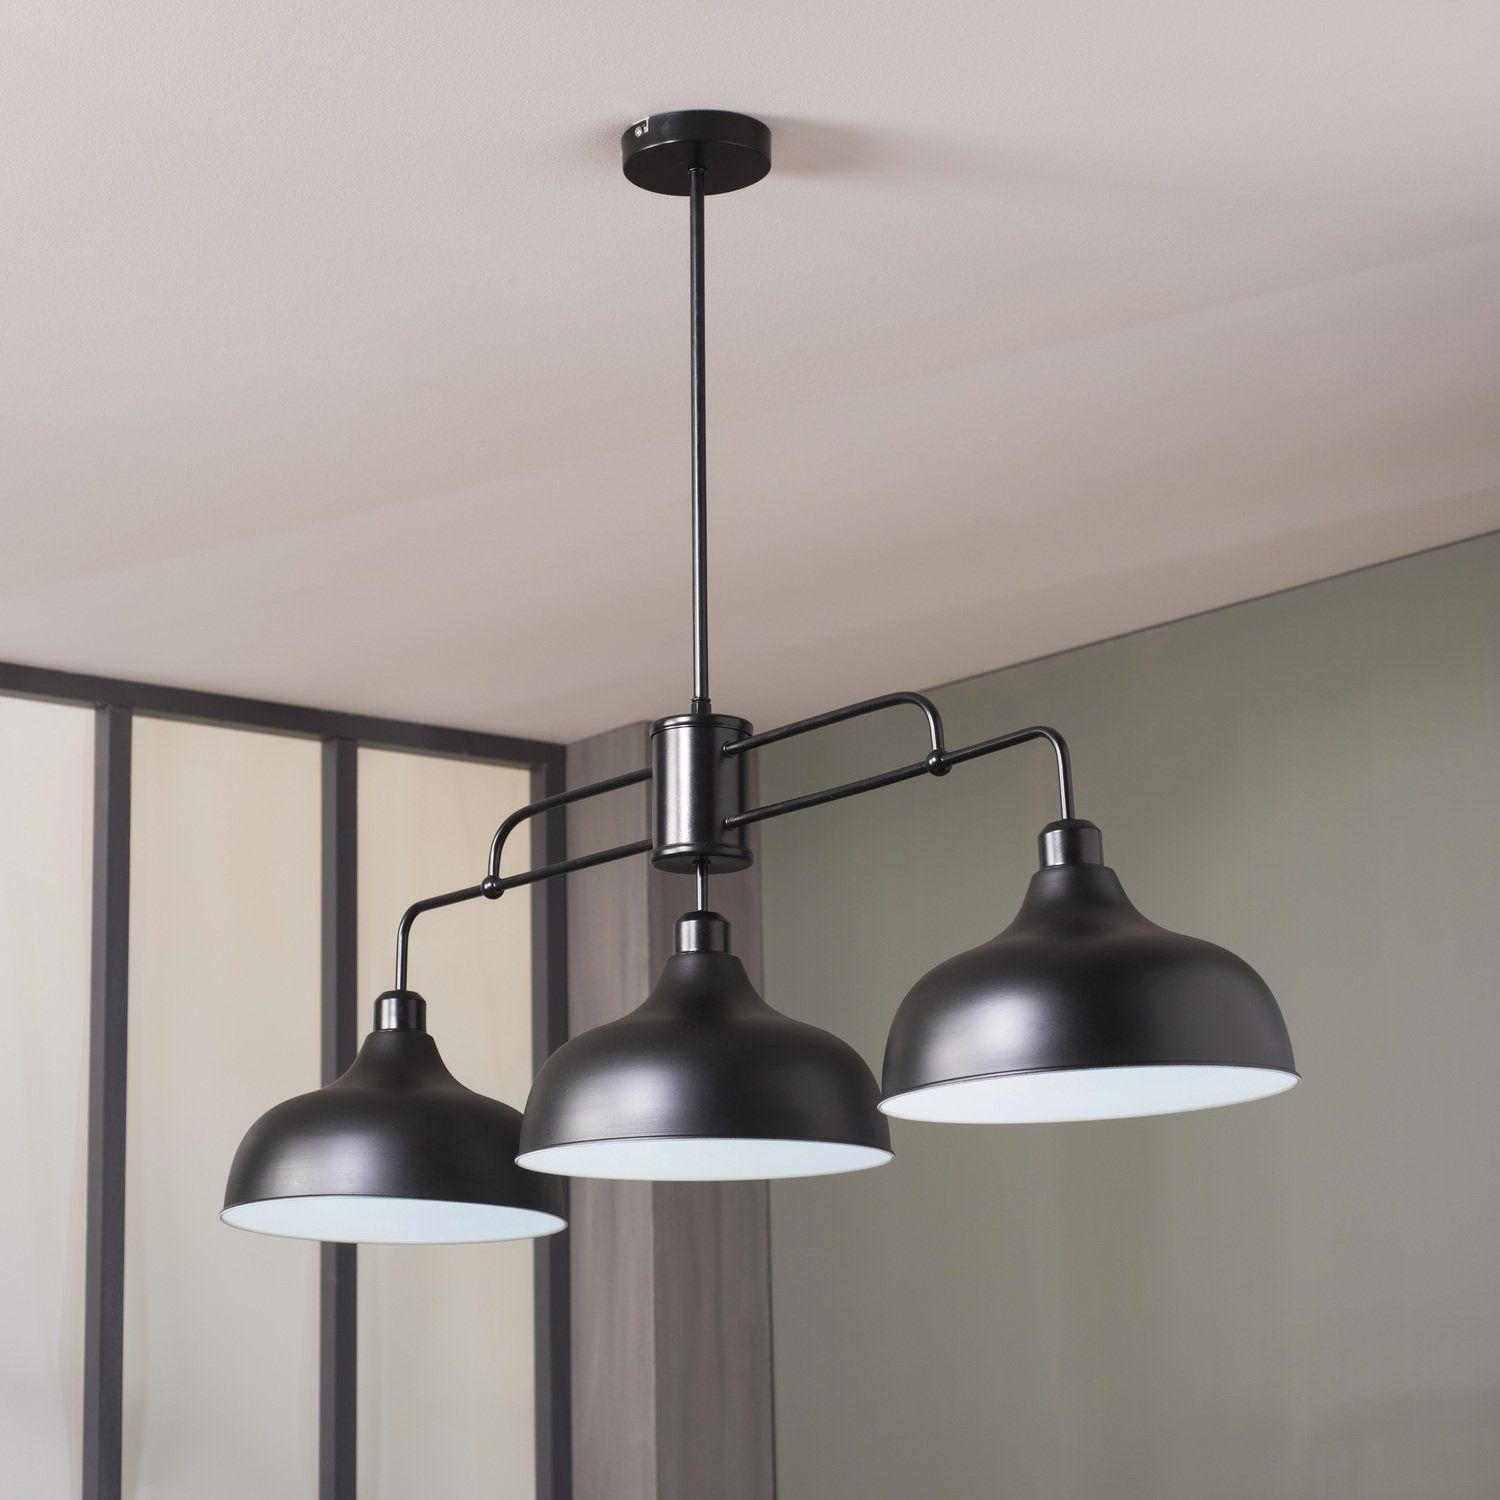 Cette suspension design adopte un style r solument for Lampe suspendu noir